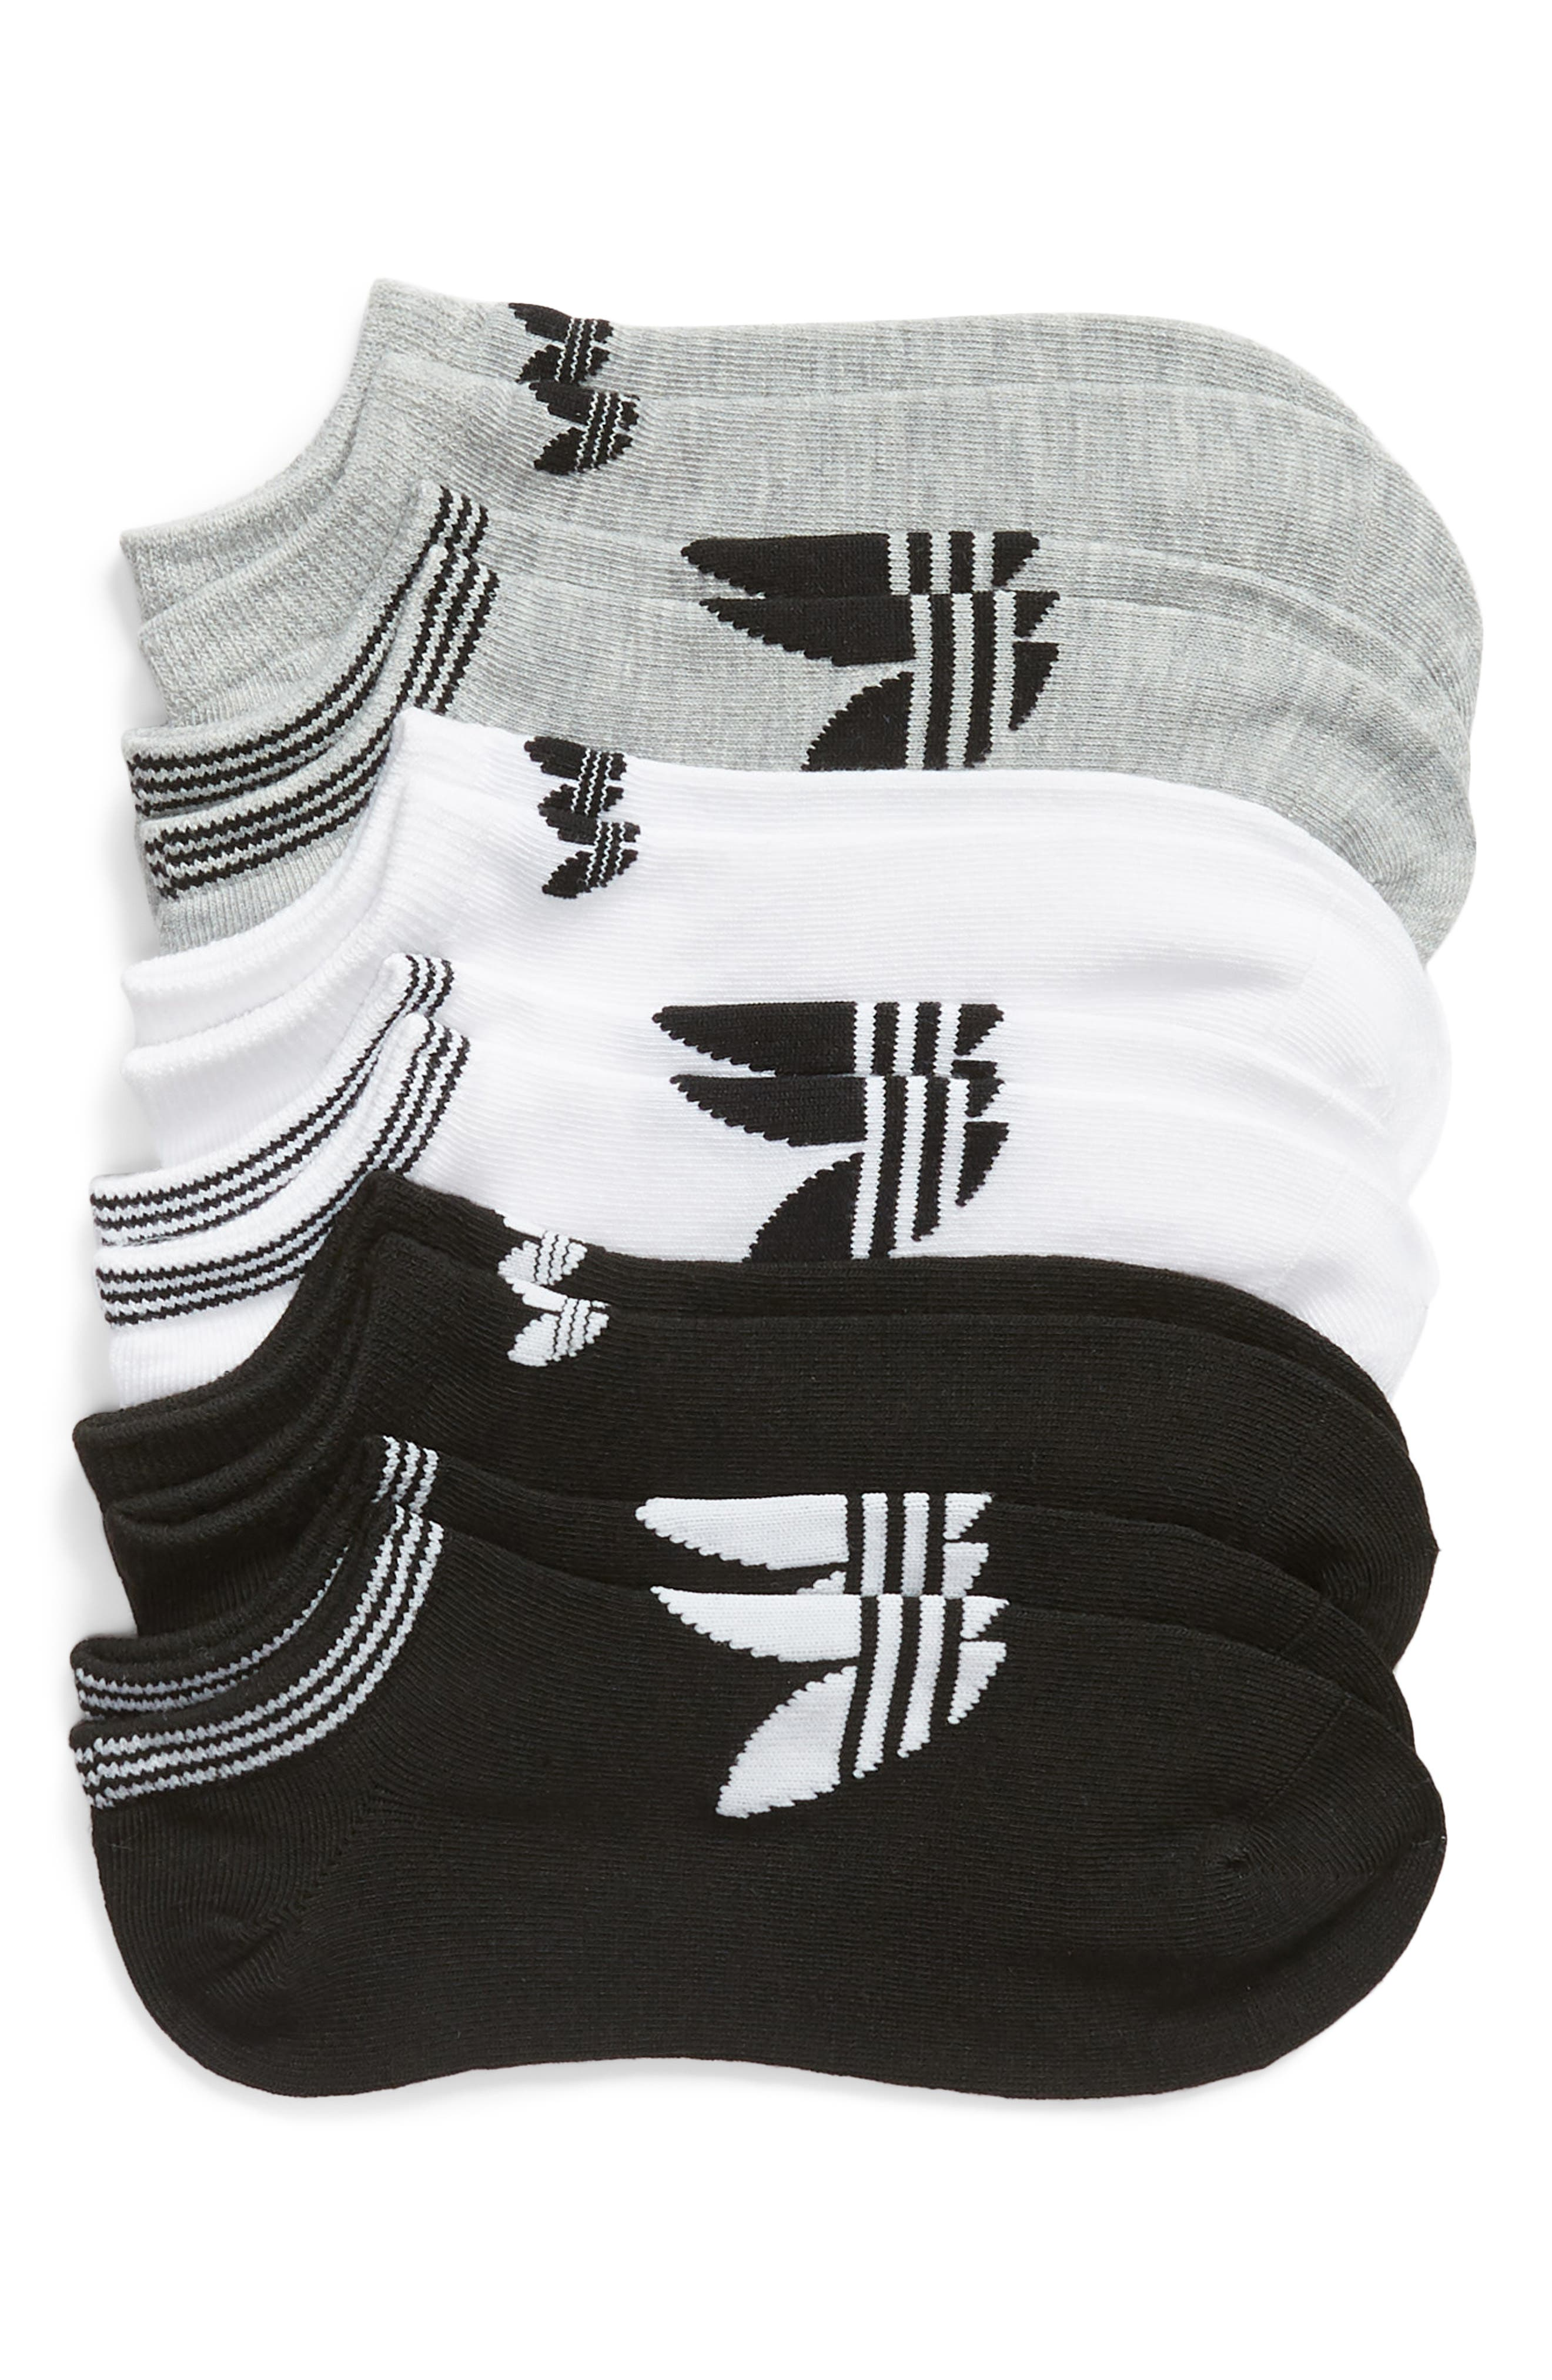 ADIDAS 6-Pack No-Show Socks, Main, color, WHITE/ LT HTHR GREY/ BLACK